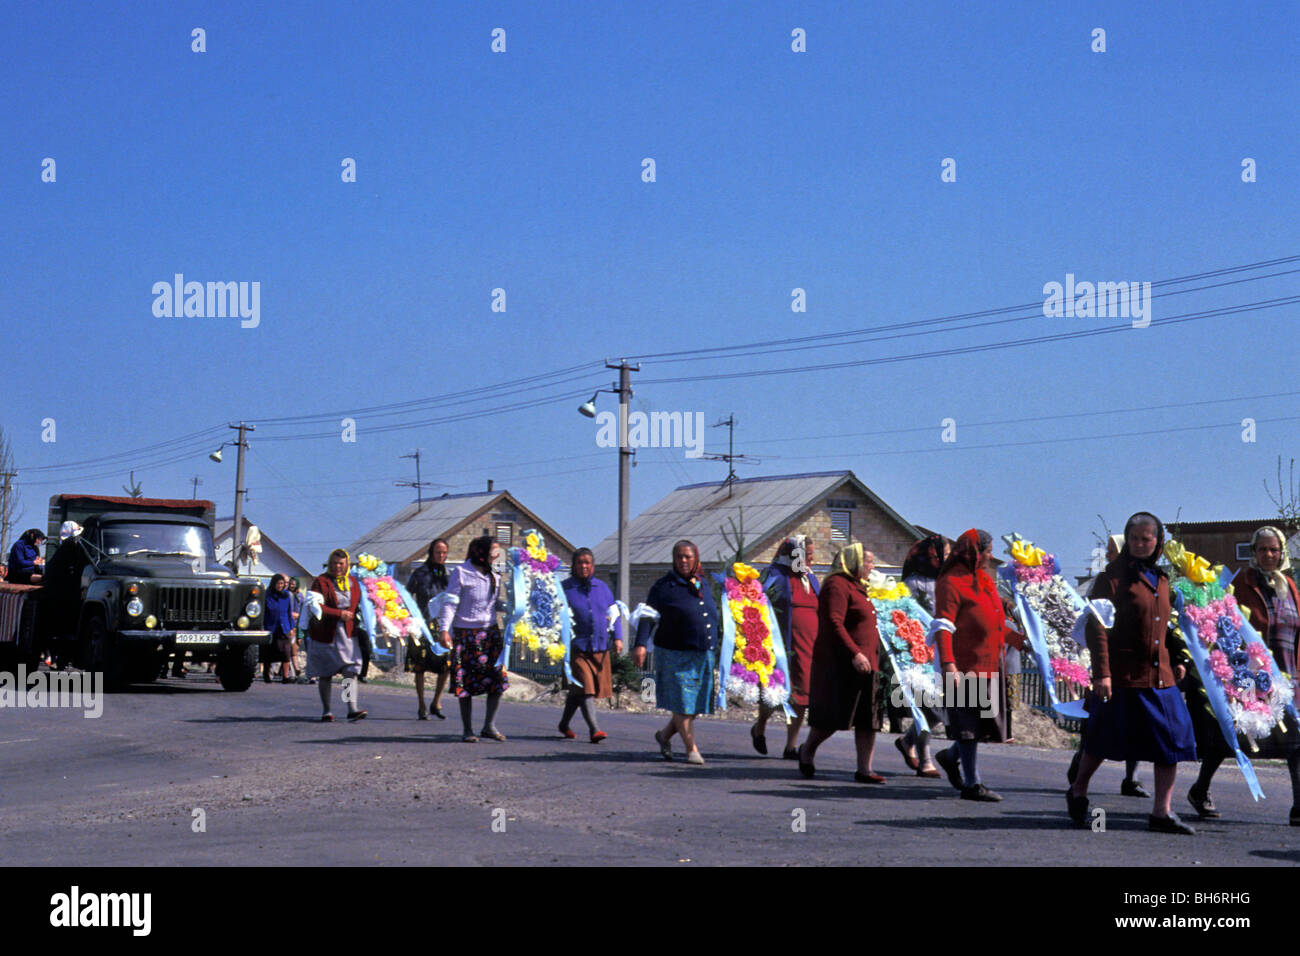 TRADITIONAL FUNERAL IN NEBRAT, RE-HOUSING TOWN OF CHERNOBYL, UKRAINE Stock Photo